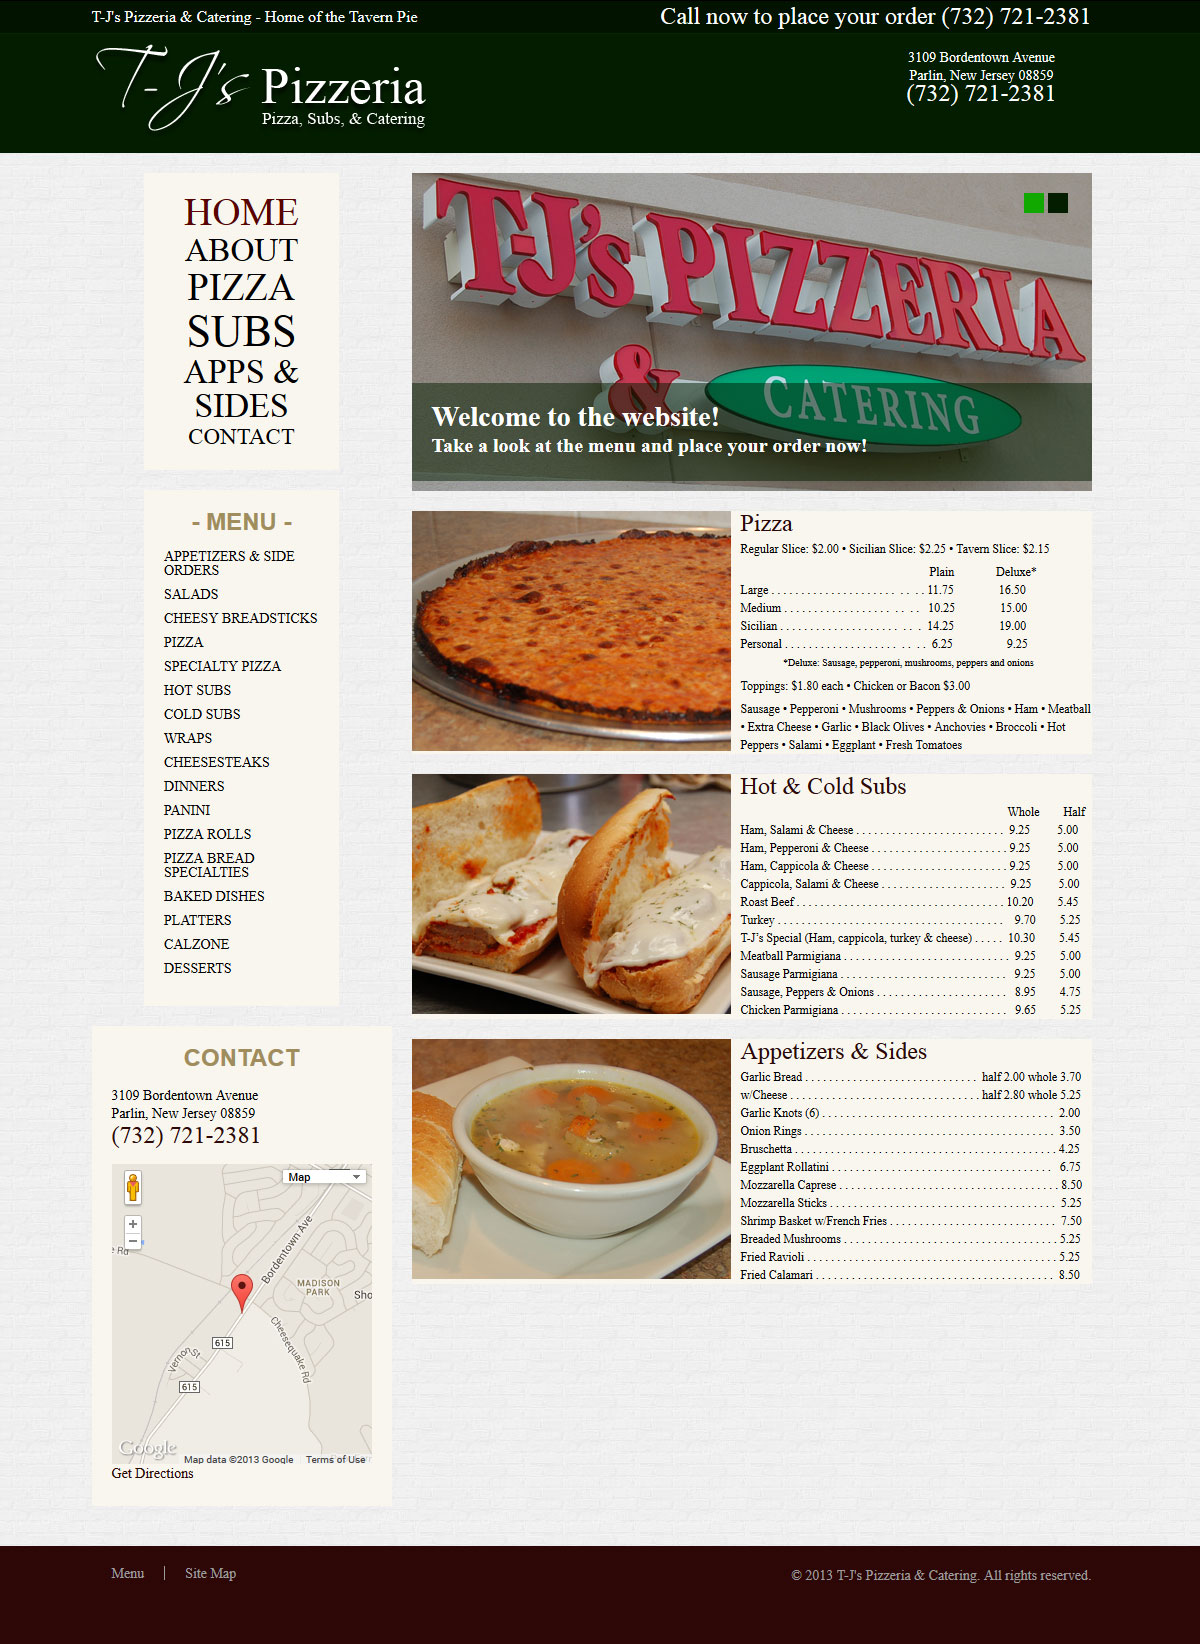 T-J's Pizzeria & Catering Website